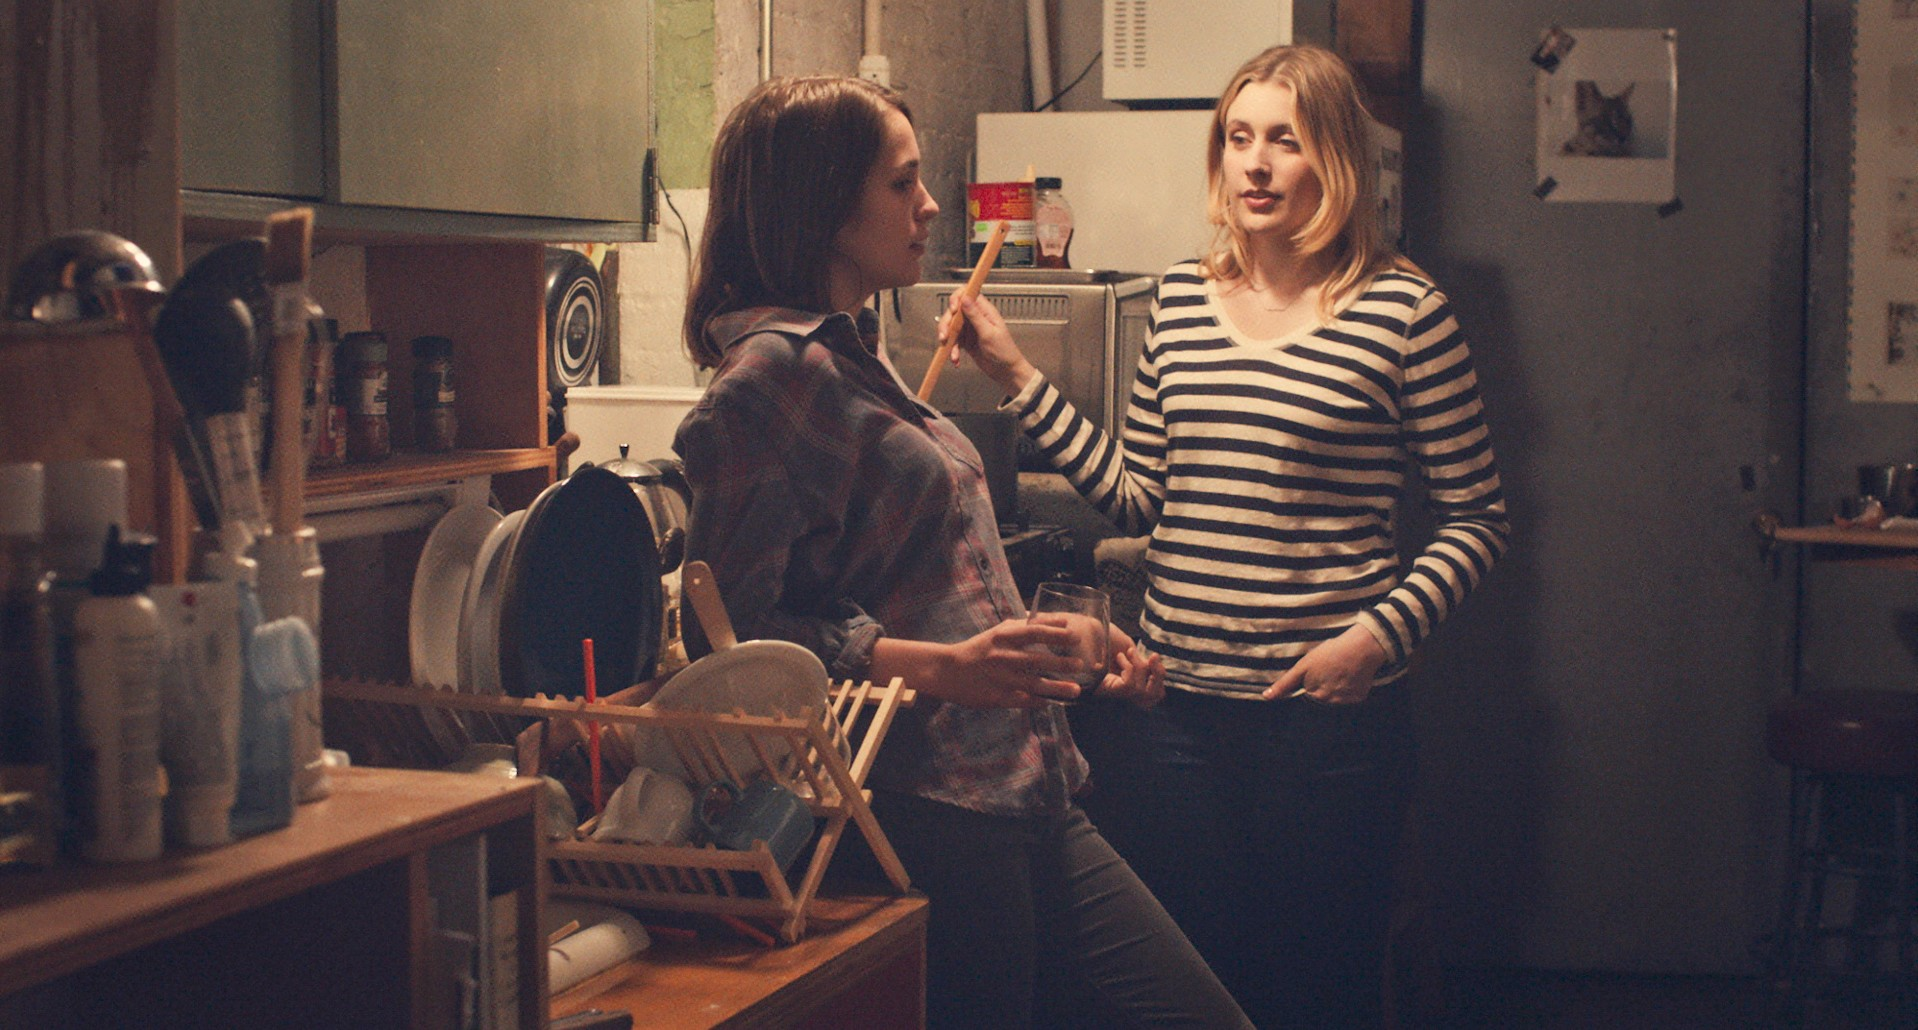 Lola Kirke and Greta Gerwig sitting together in the kitchen in Mistress America